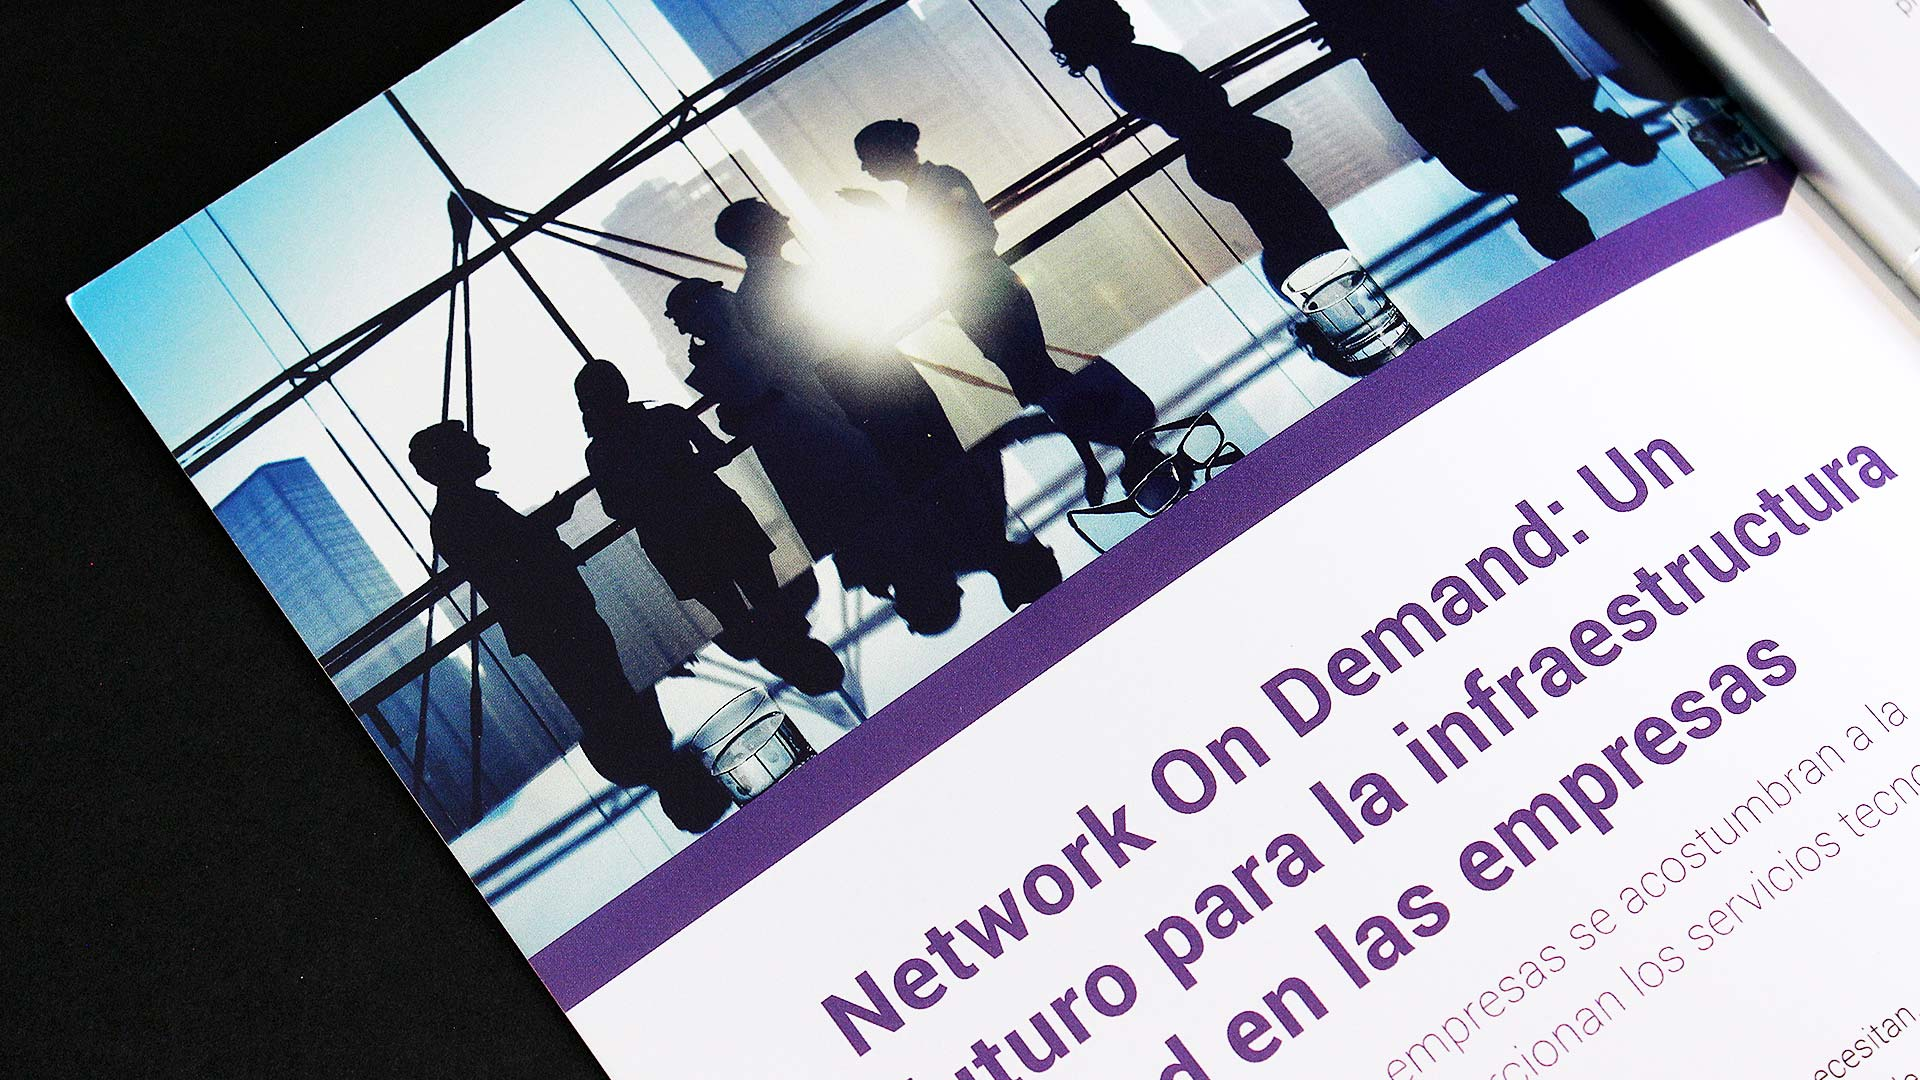 alcatel-content-marketing-informe-resumen-ejecutivo-networkondemand-ebook-2016-11